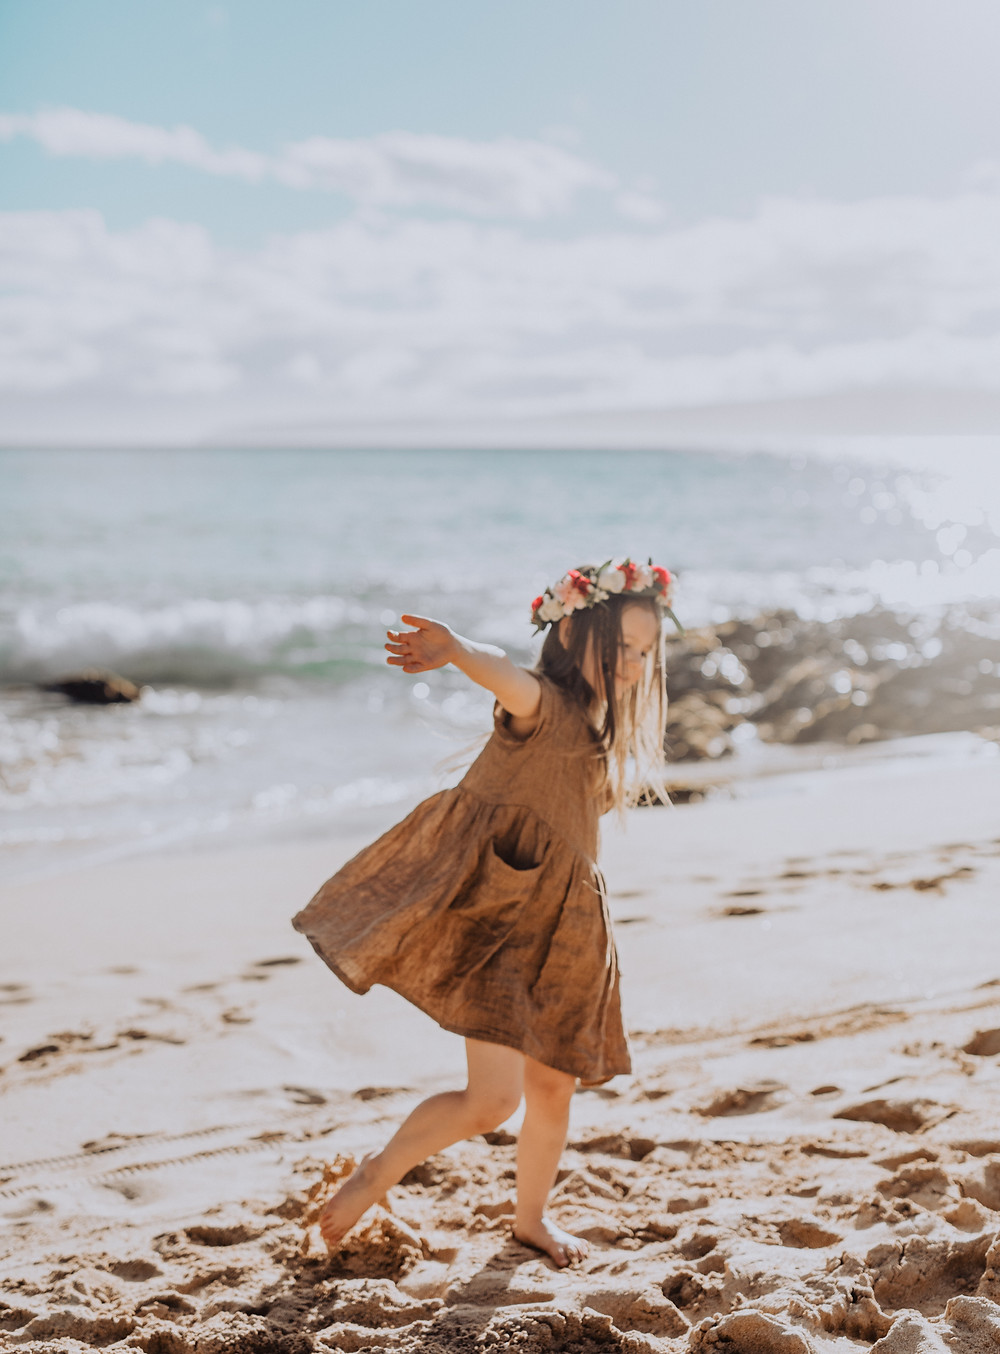 A little girl is playing on the beach in hawaii in a linen dress.